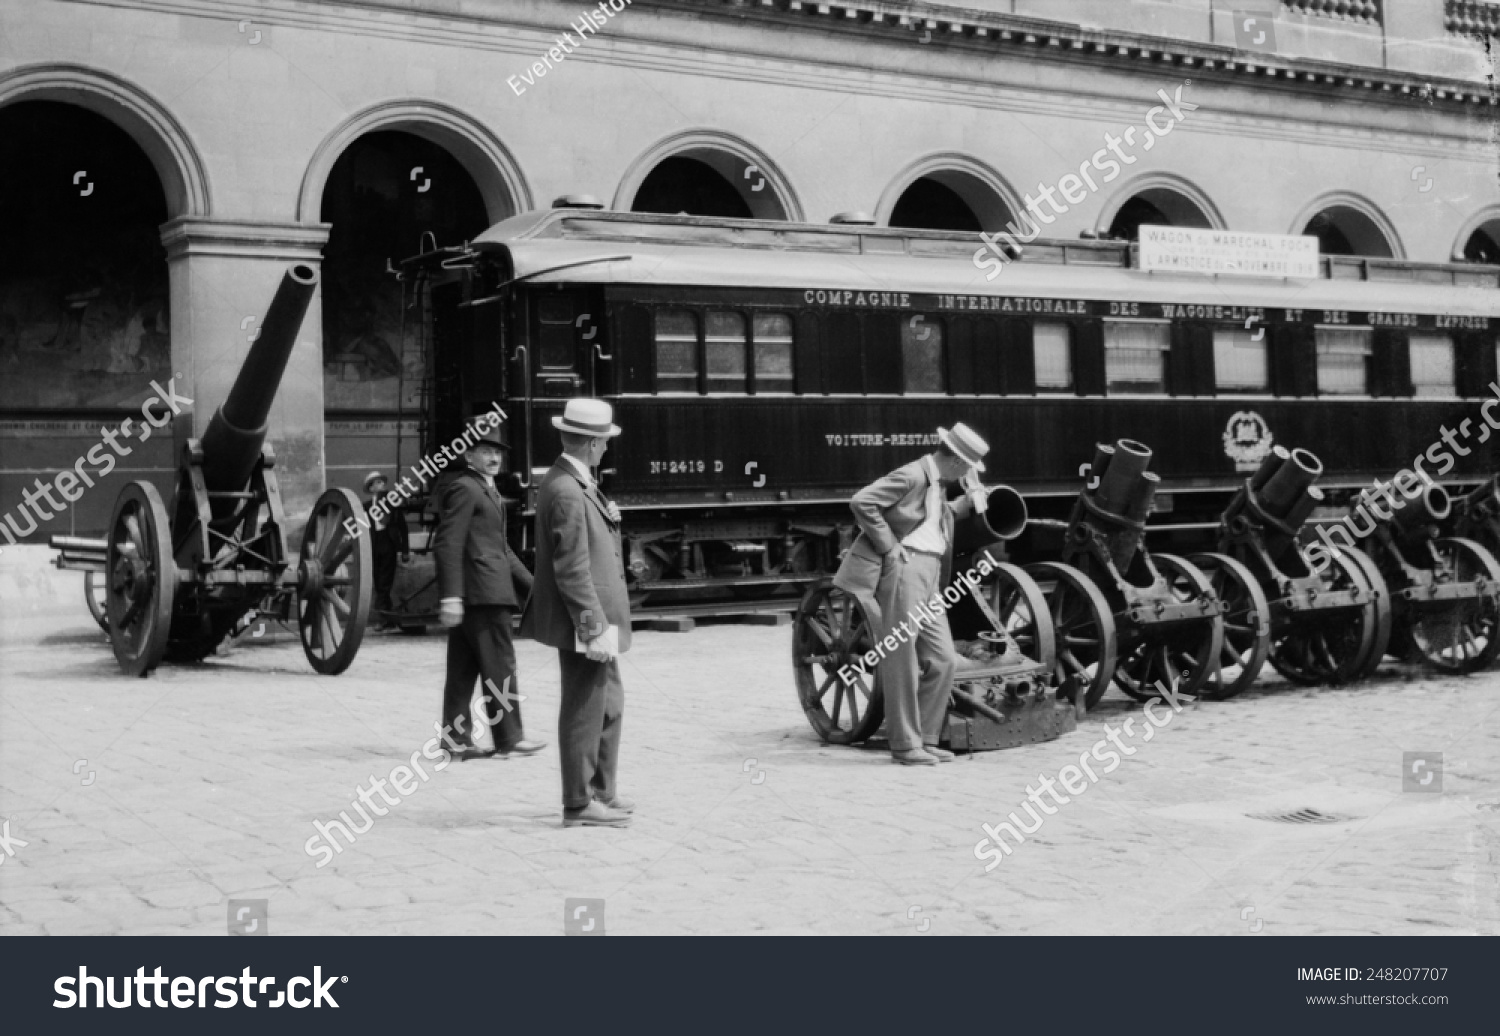 French railroad car in which armistice ending ww1 was for French shows